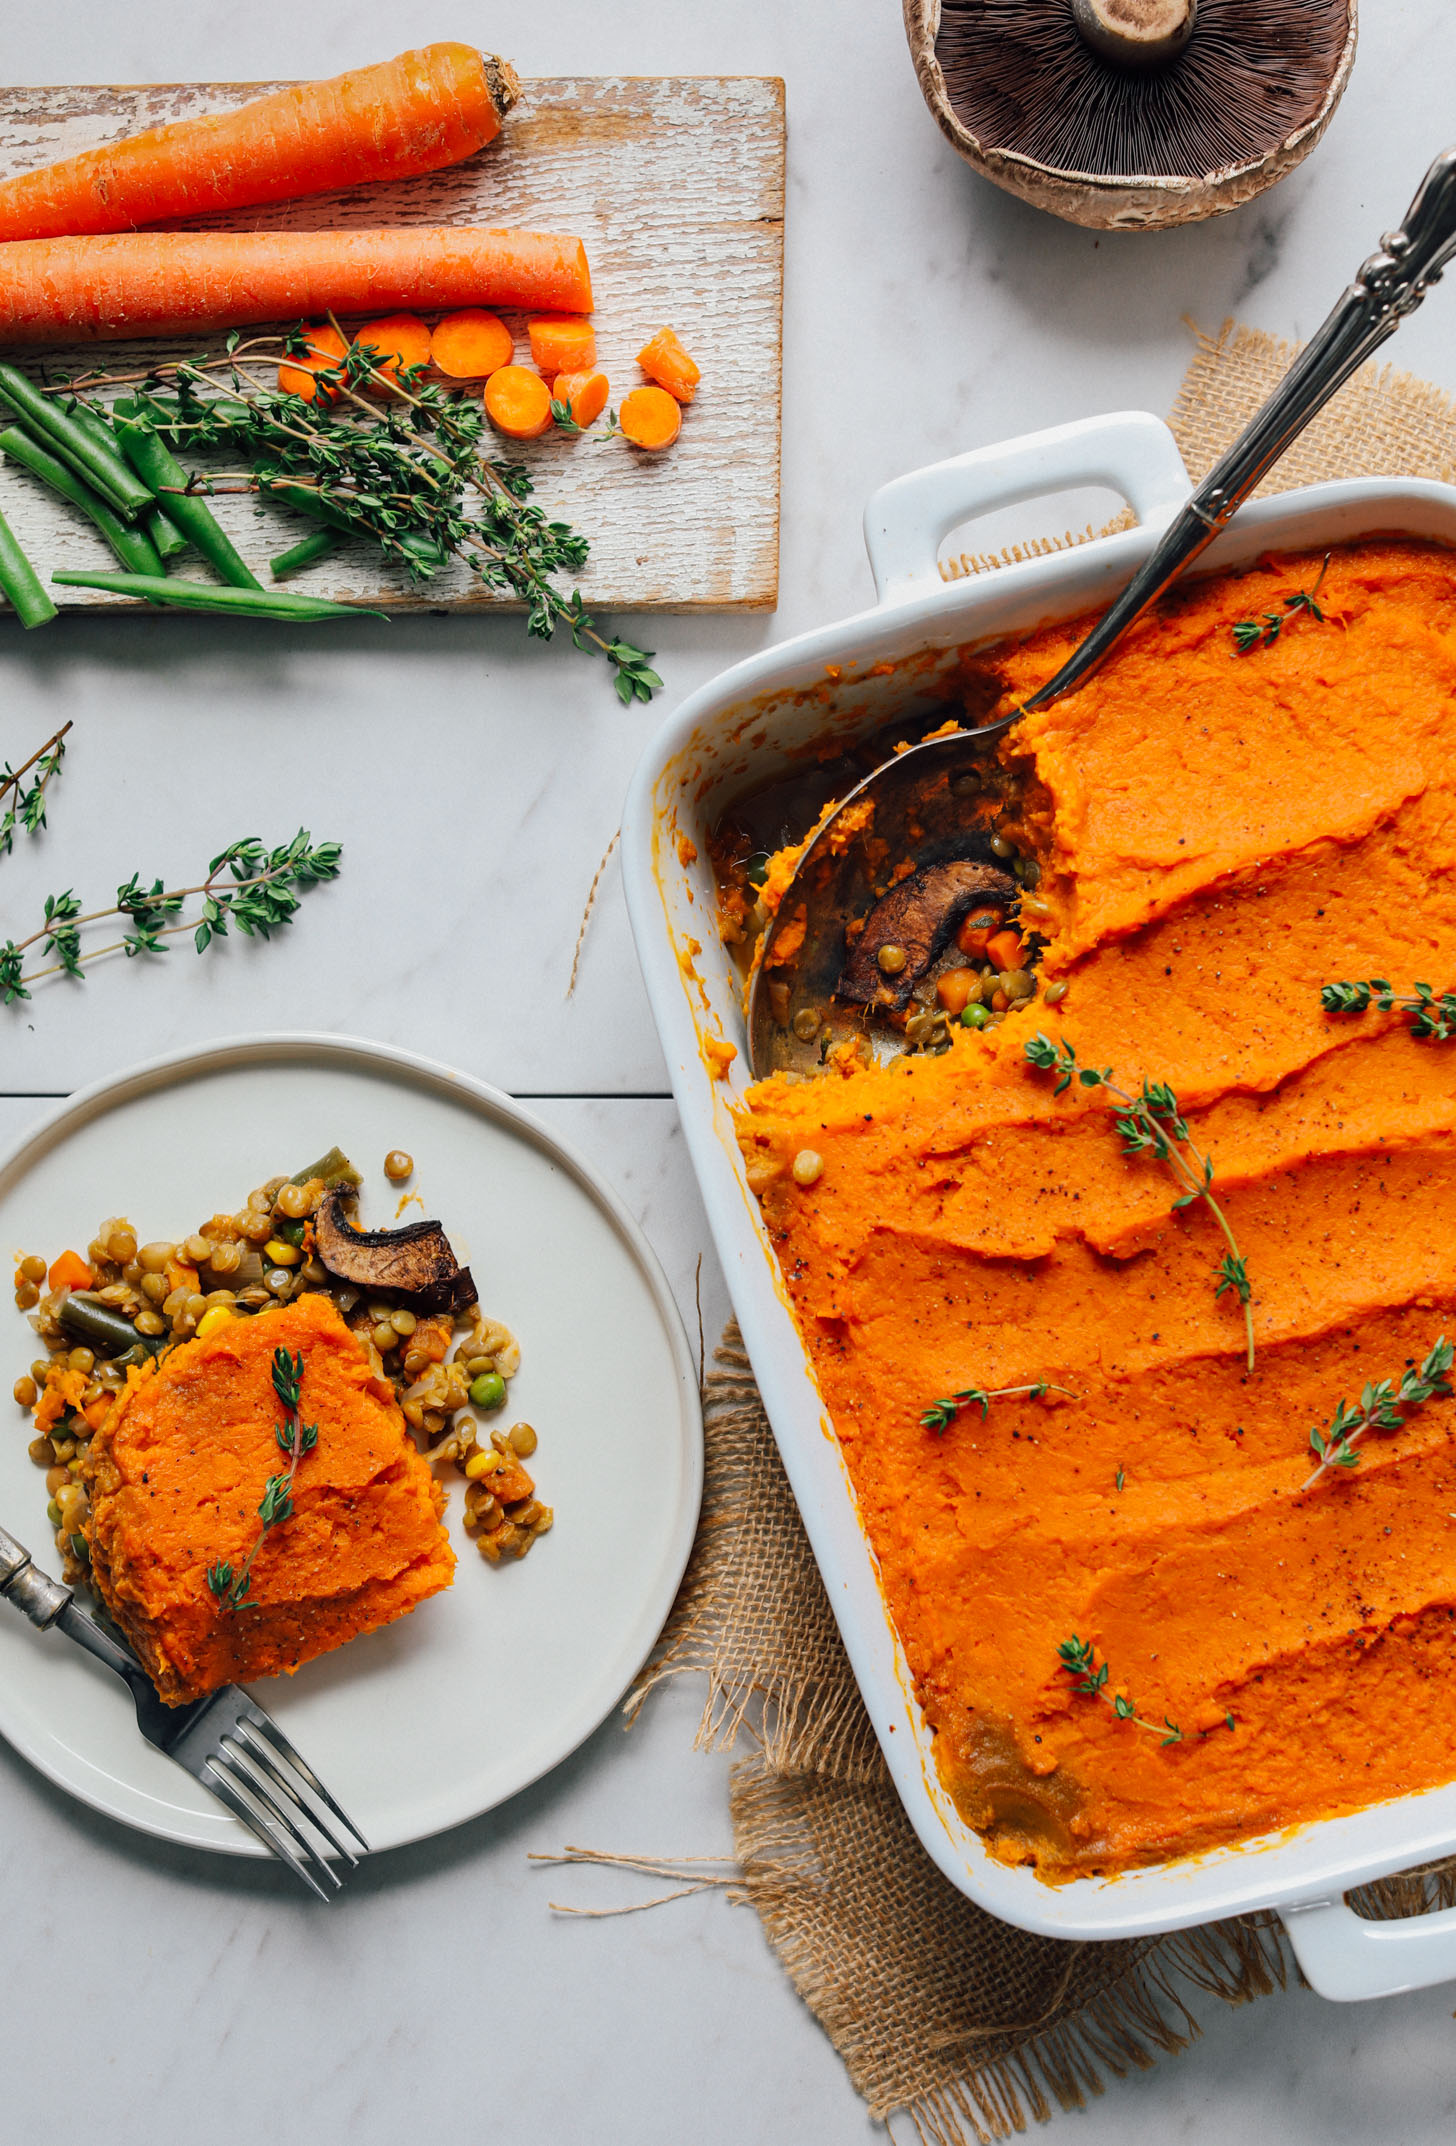 AMAZING Sweet Potato Lentil Shepherd's Pie! 10 ingredients, quick + easy methods, SO satisfying! #vegan #sweetpotato #lentil #plantbased #shepherdspie #thanksgiving #recipe #glutenfree #minimalistbaker